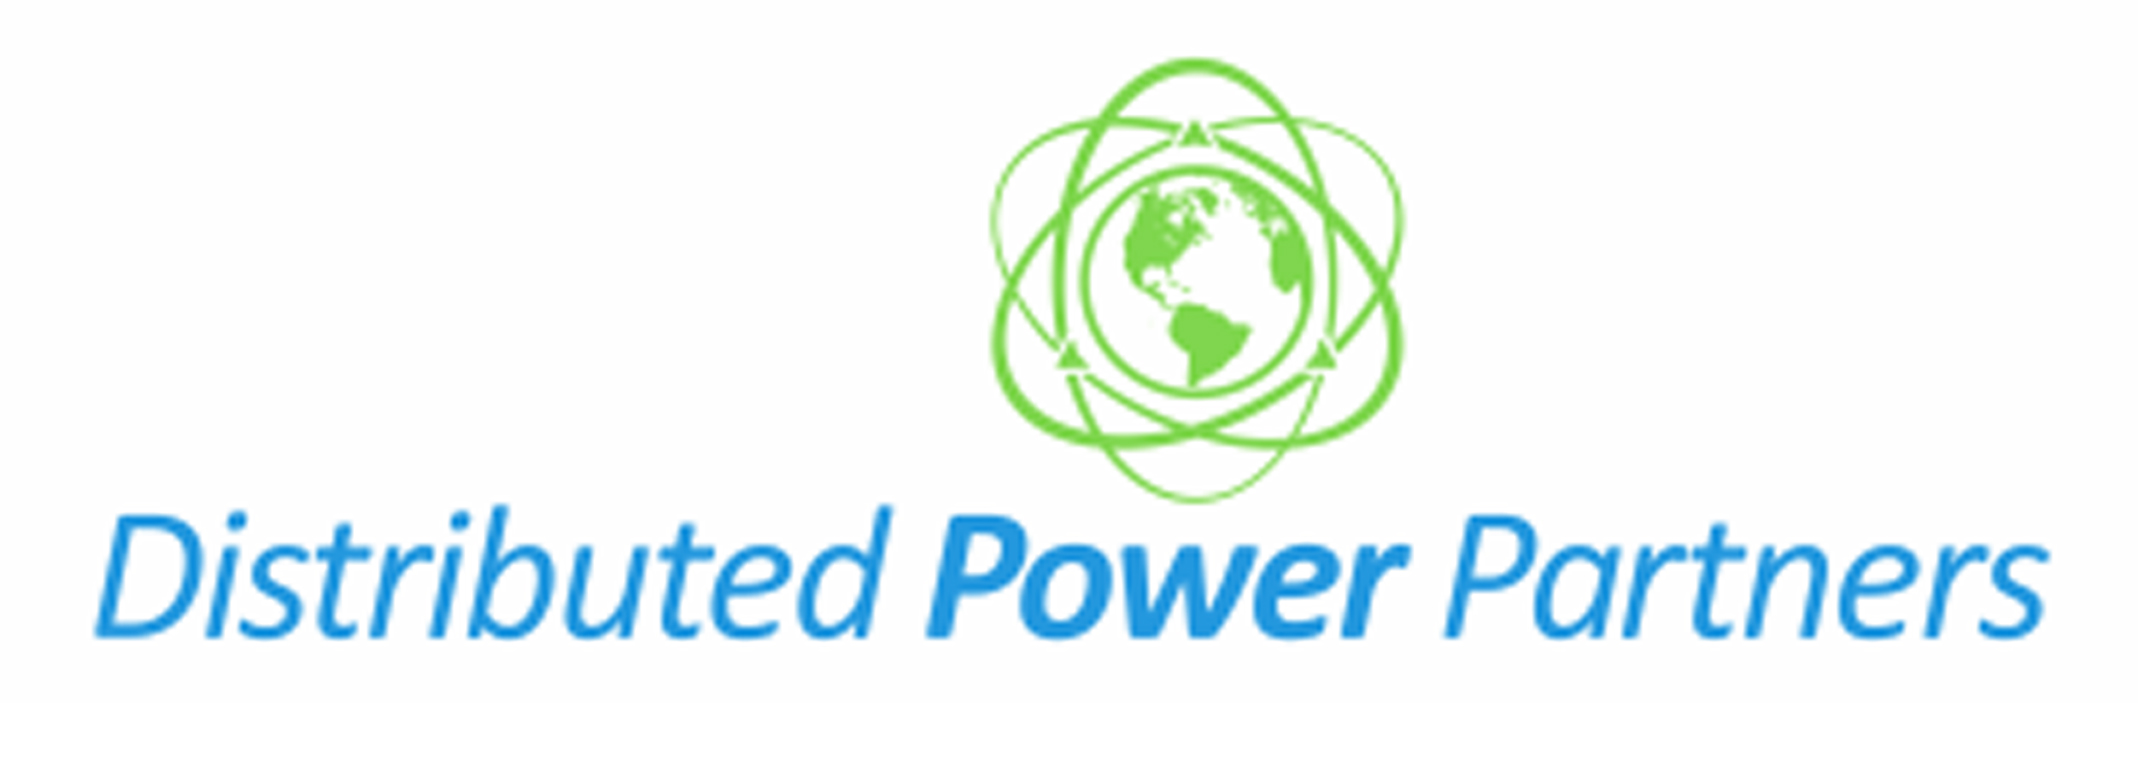 distributed power partners